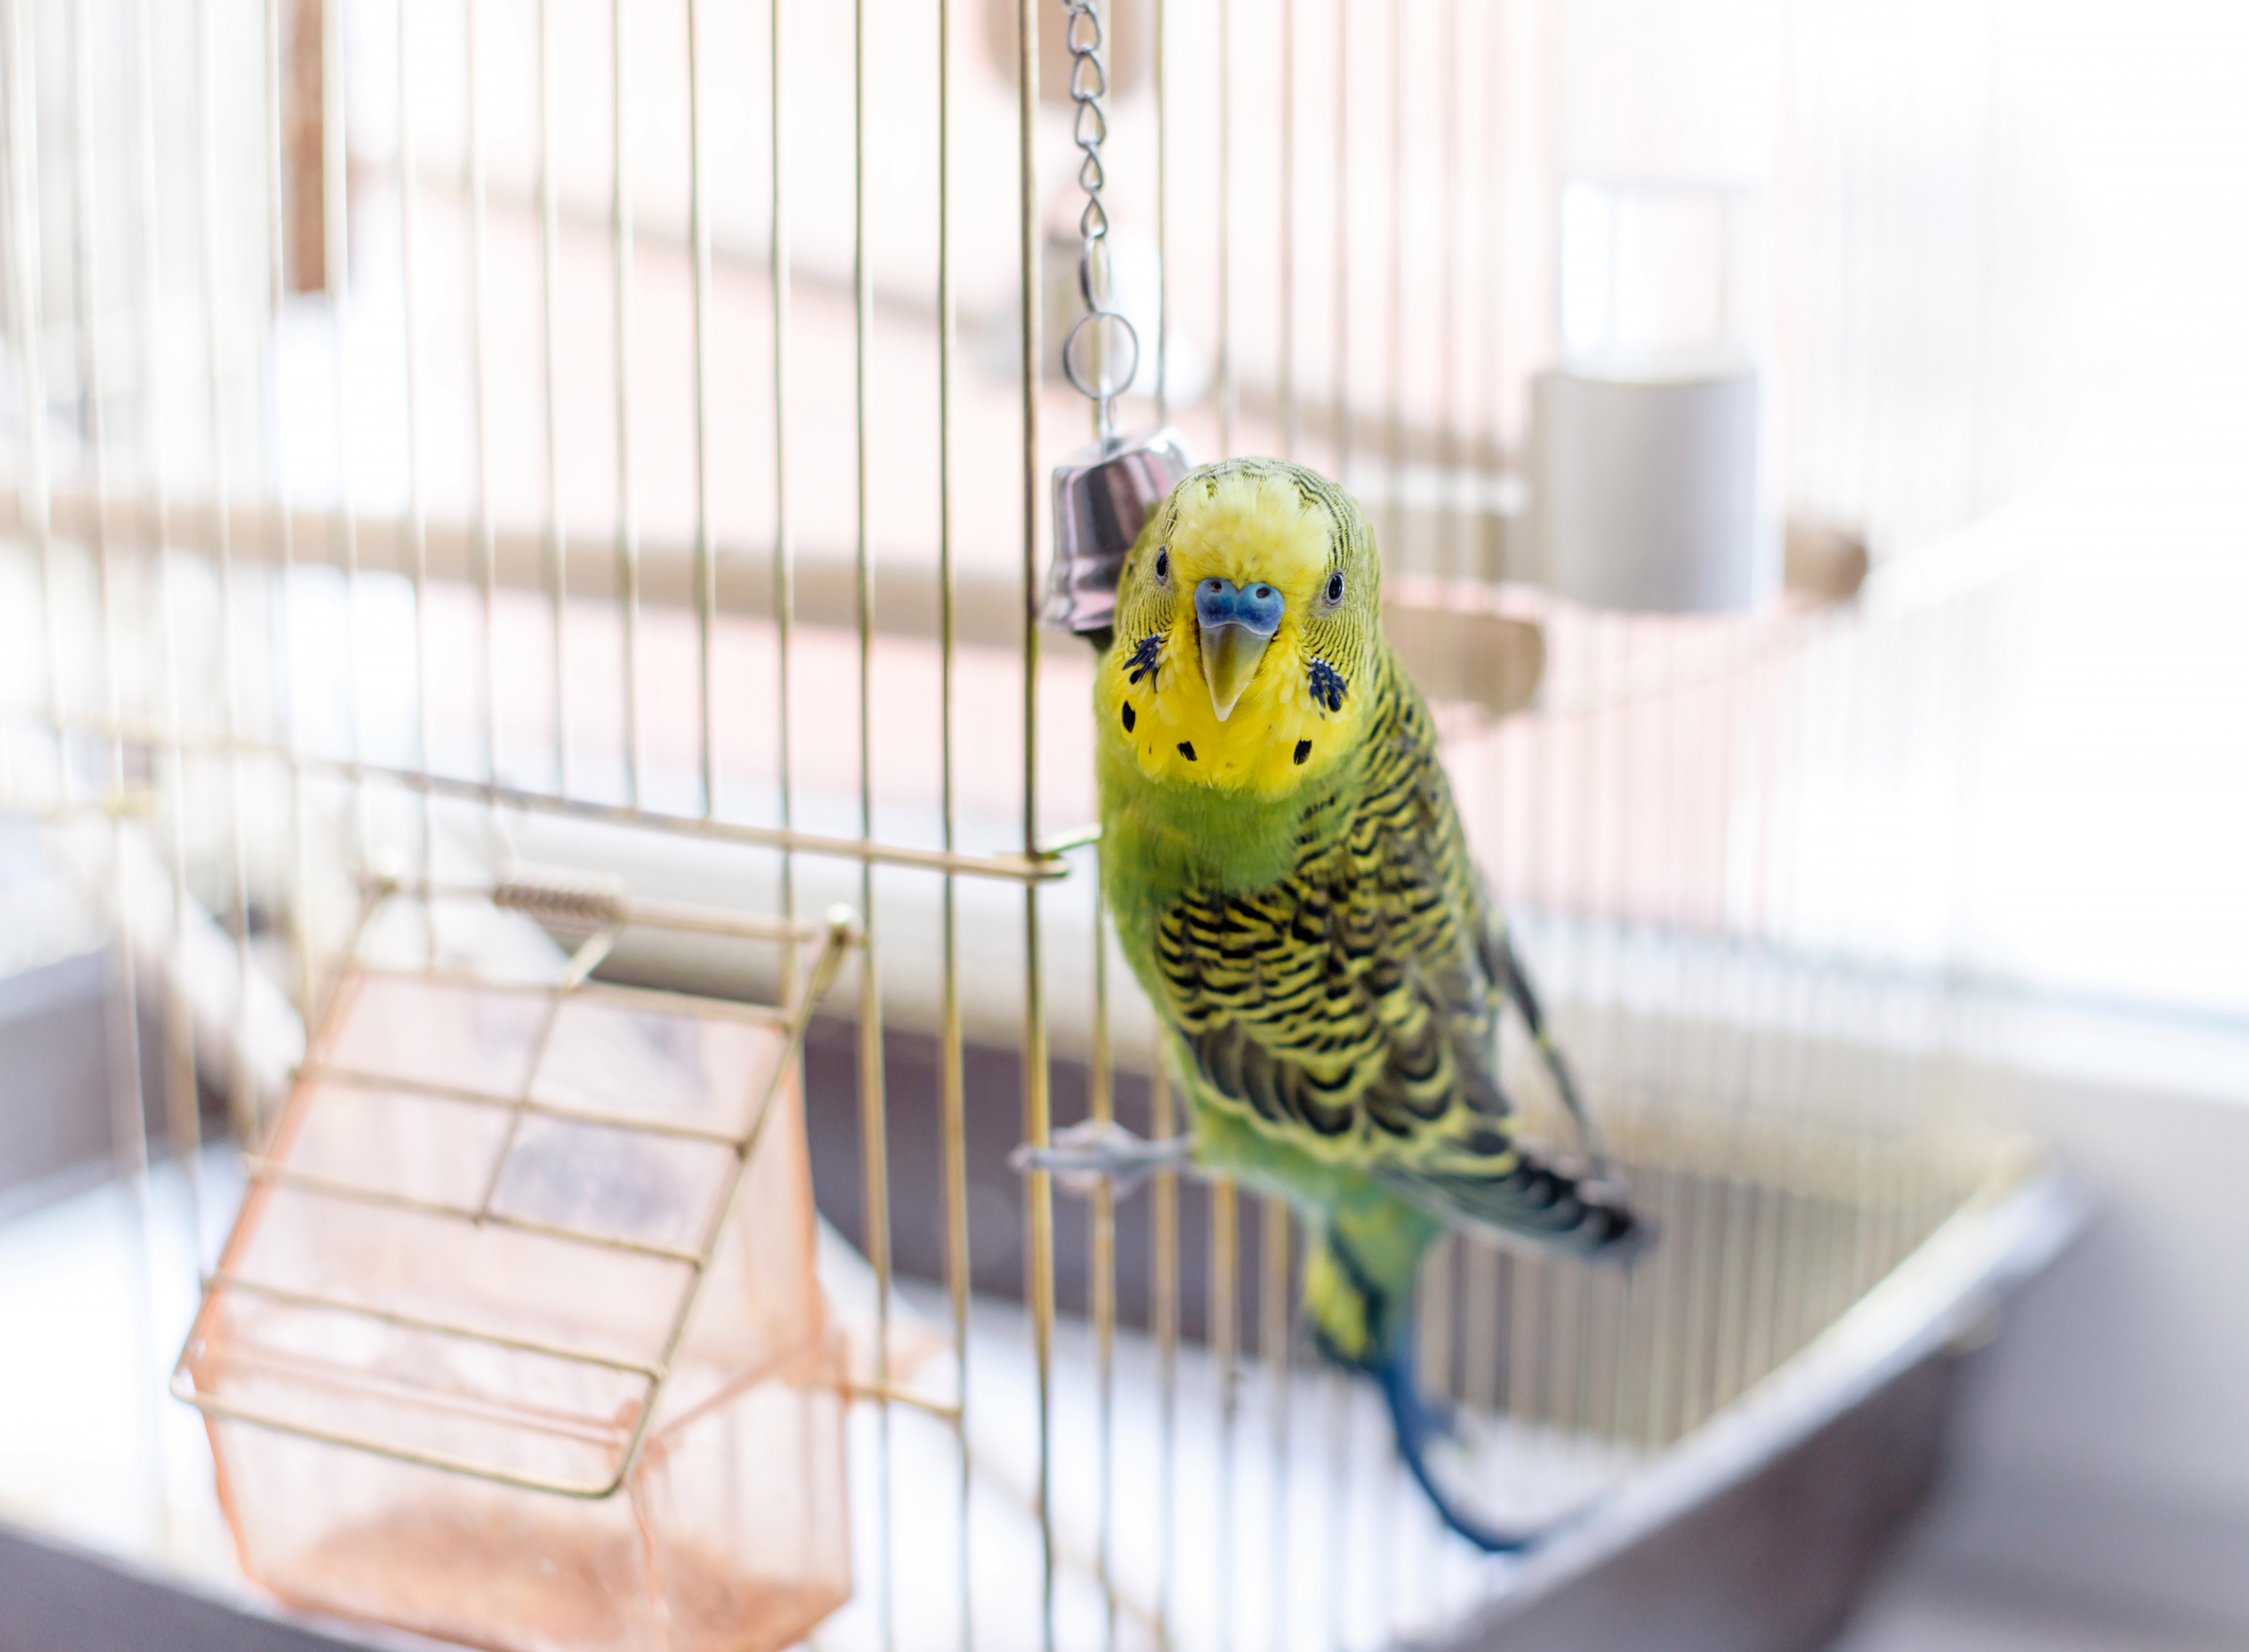 This week, our vet helps a young budgie who hasn't been eating her food